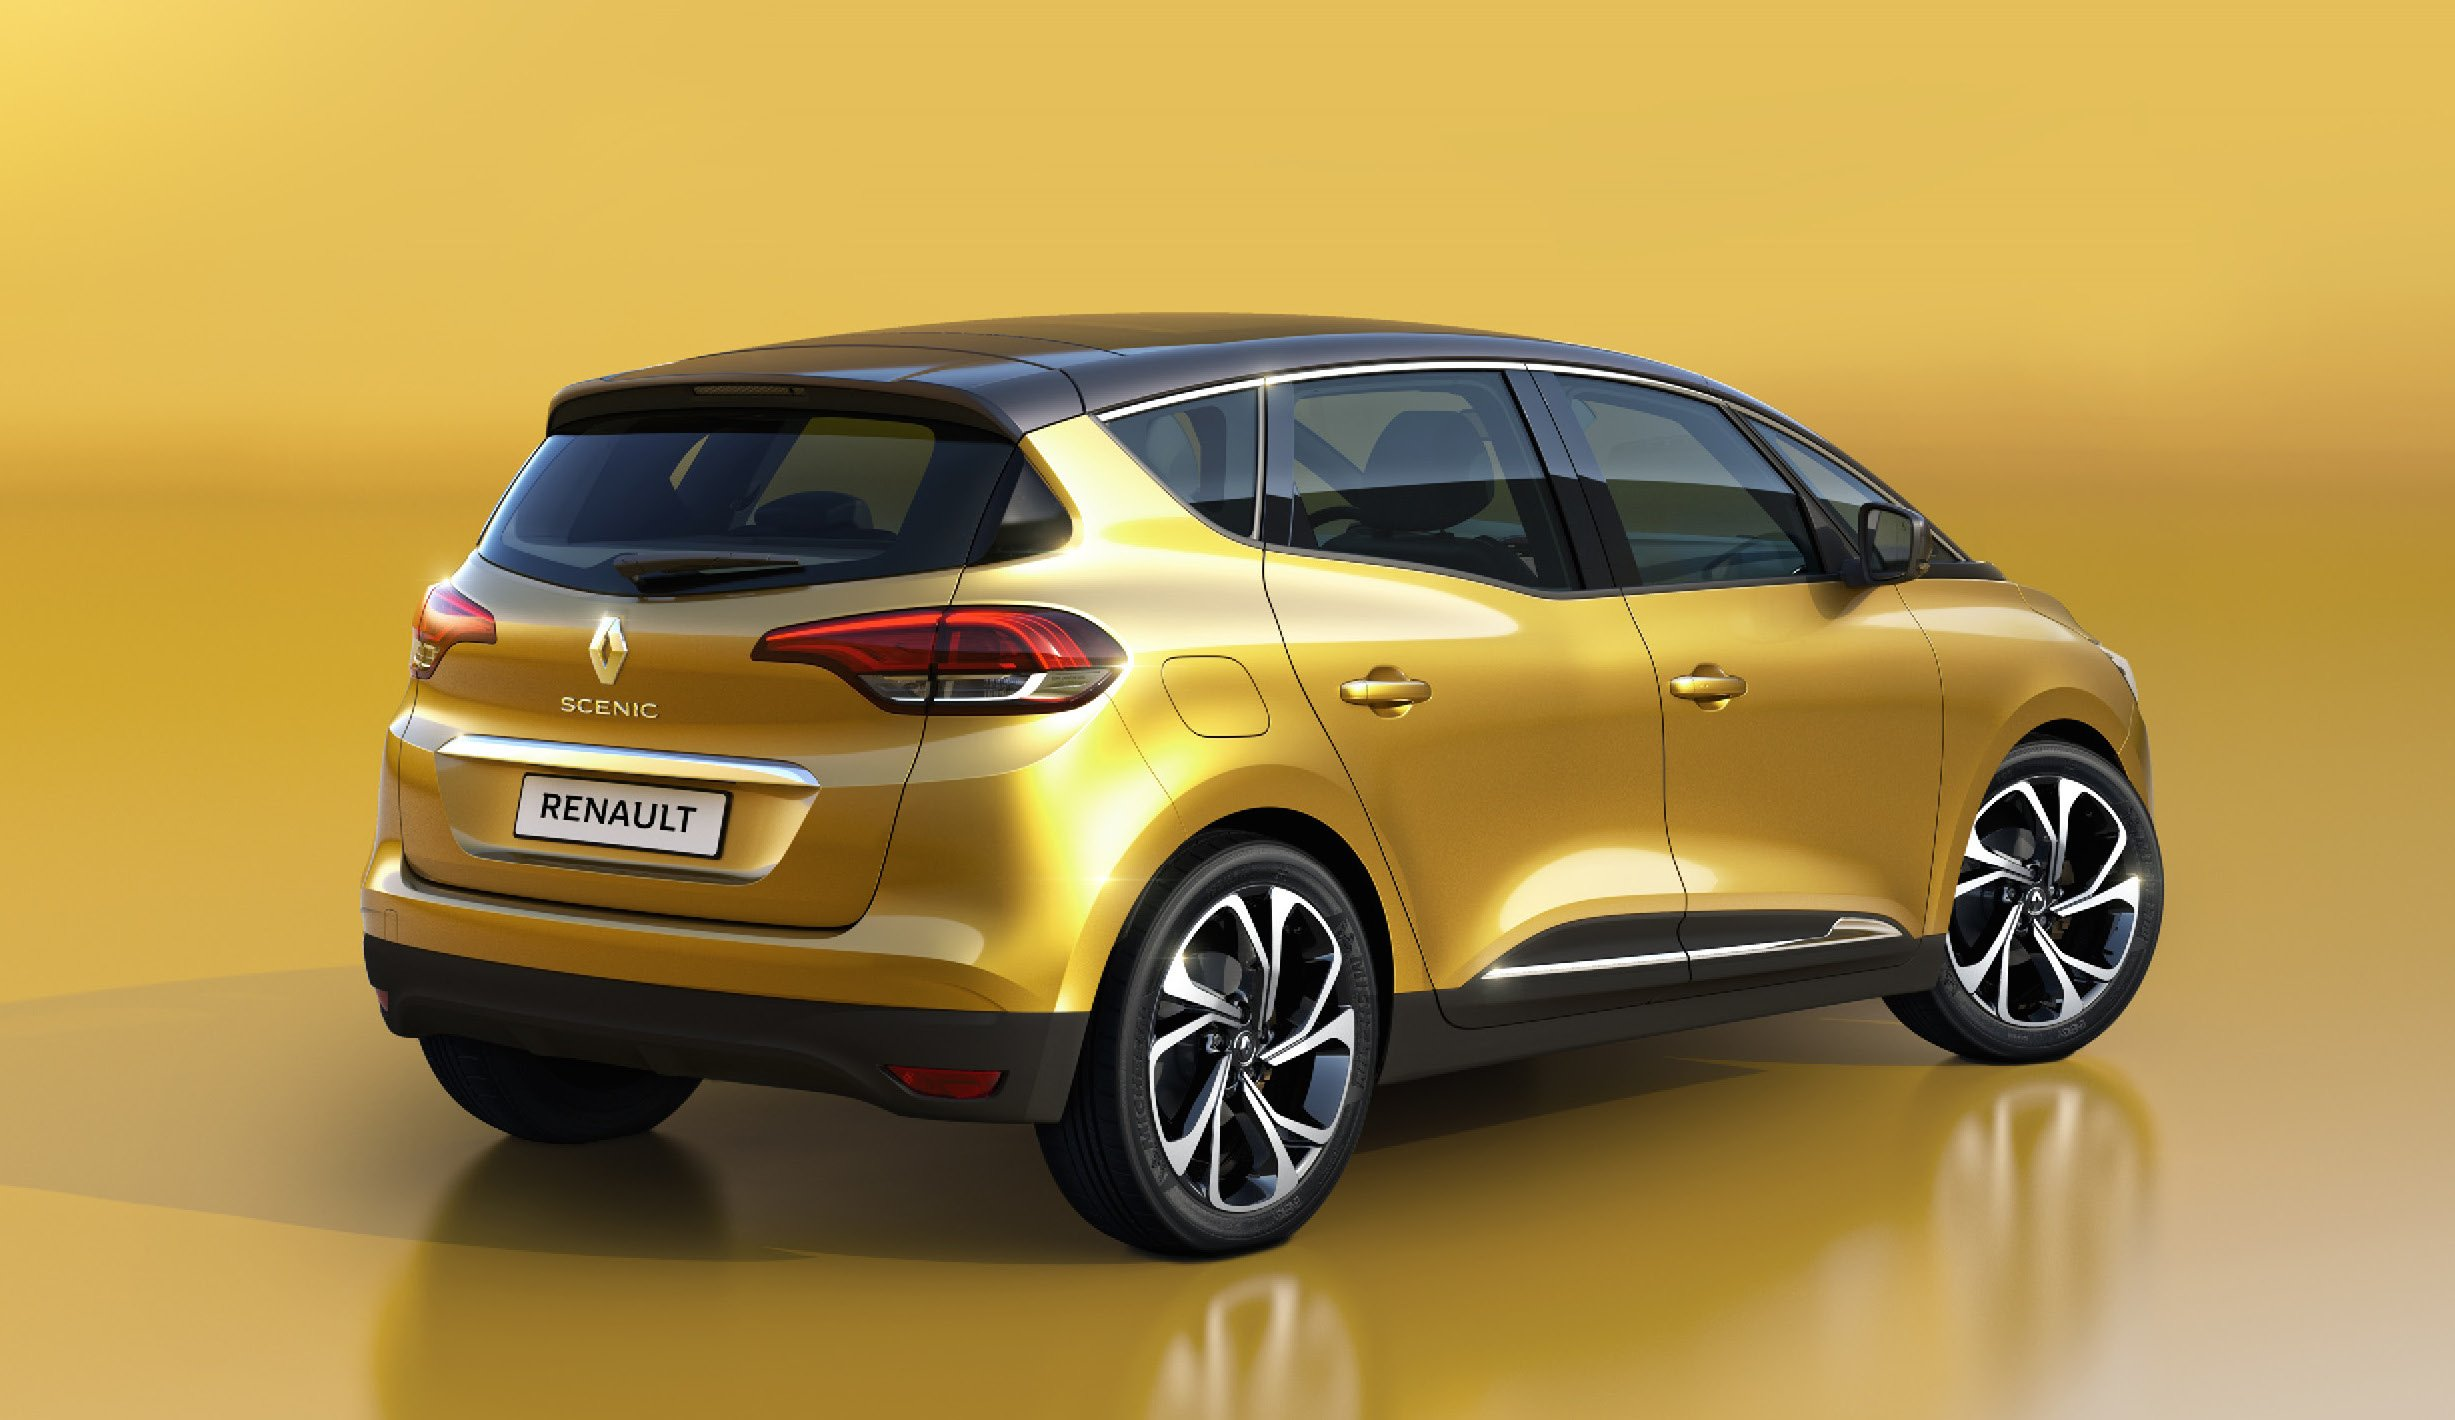 2017 Renault Scenic Funky French Mpv Not Bound For